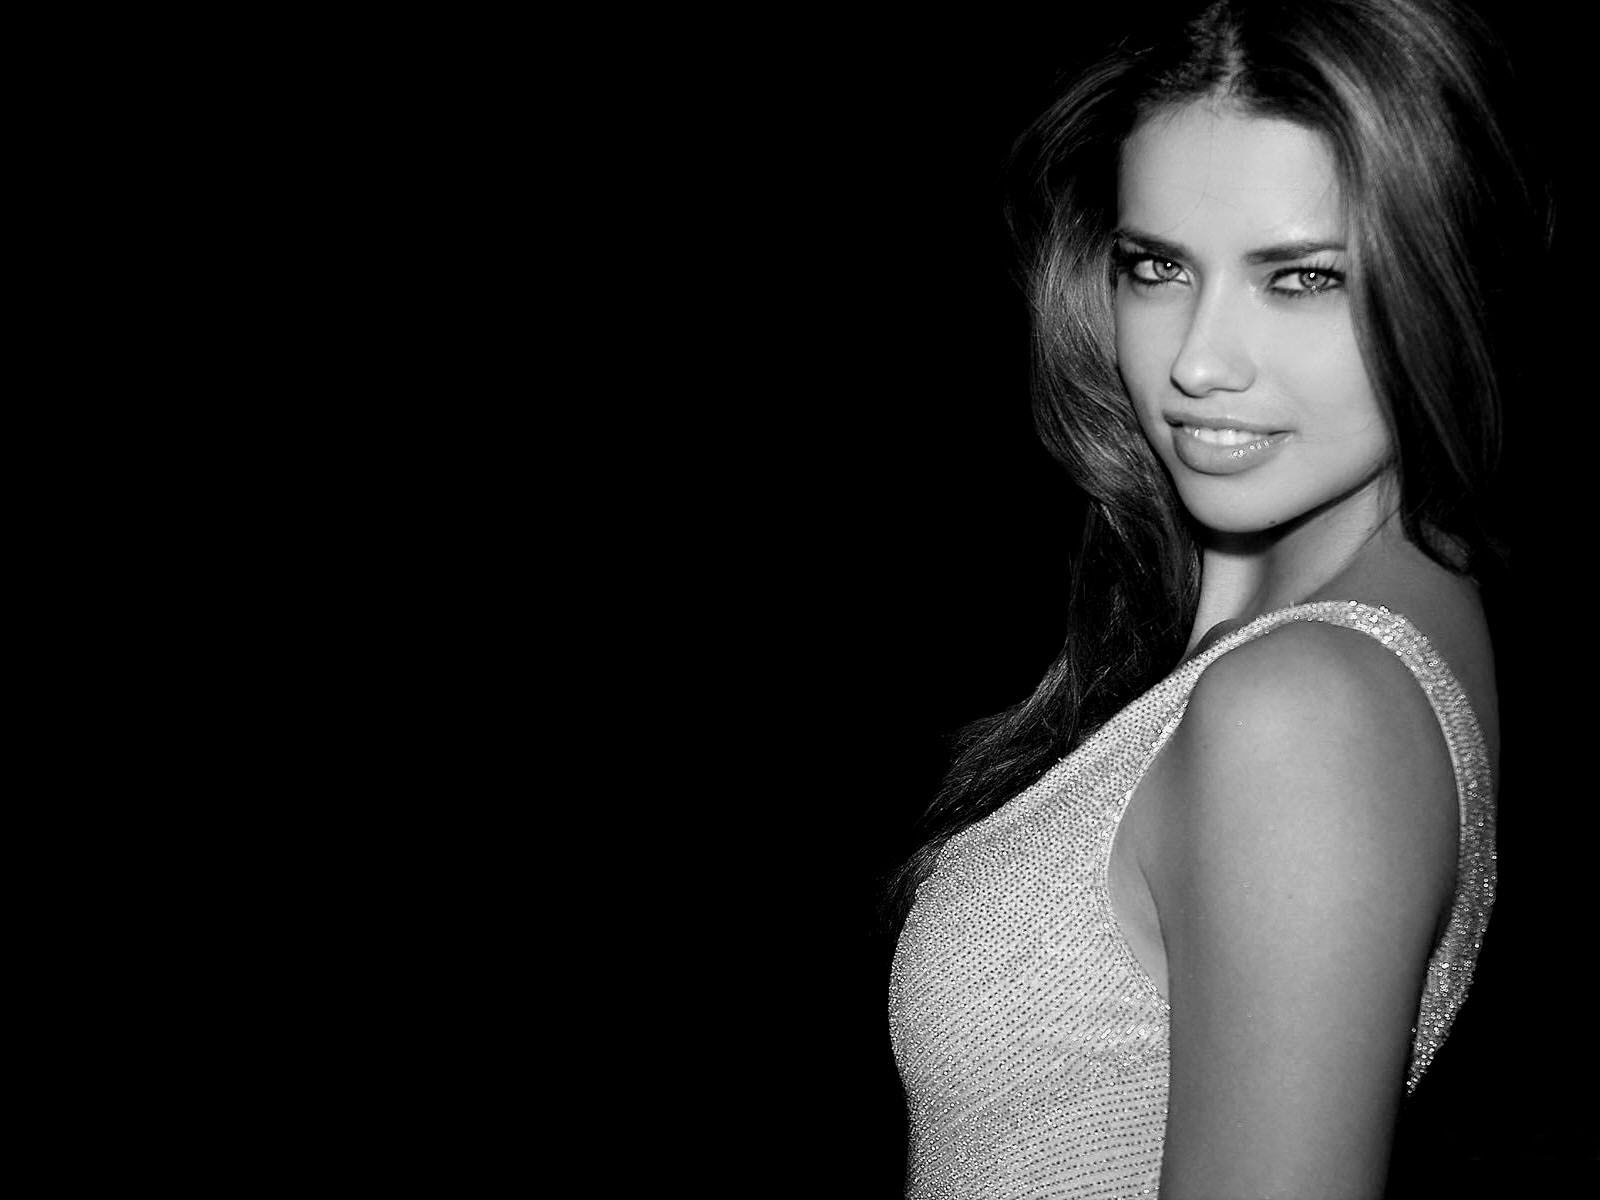 Wallpaper highlights adriana lima wallpapers adriana lima wallpapers voltagebd Gallery